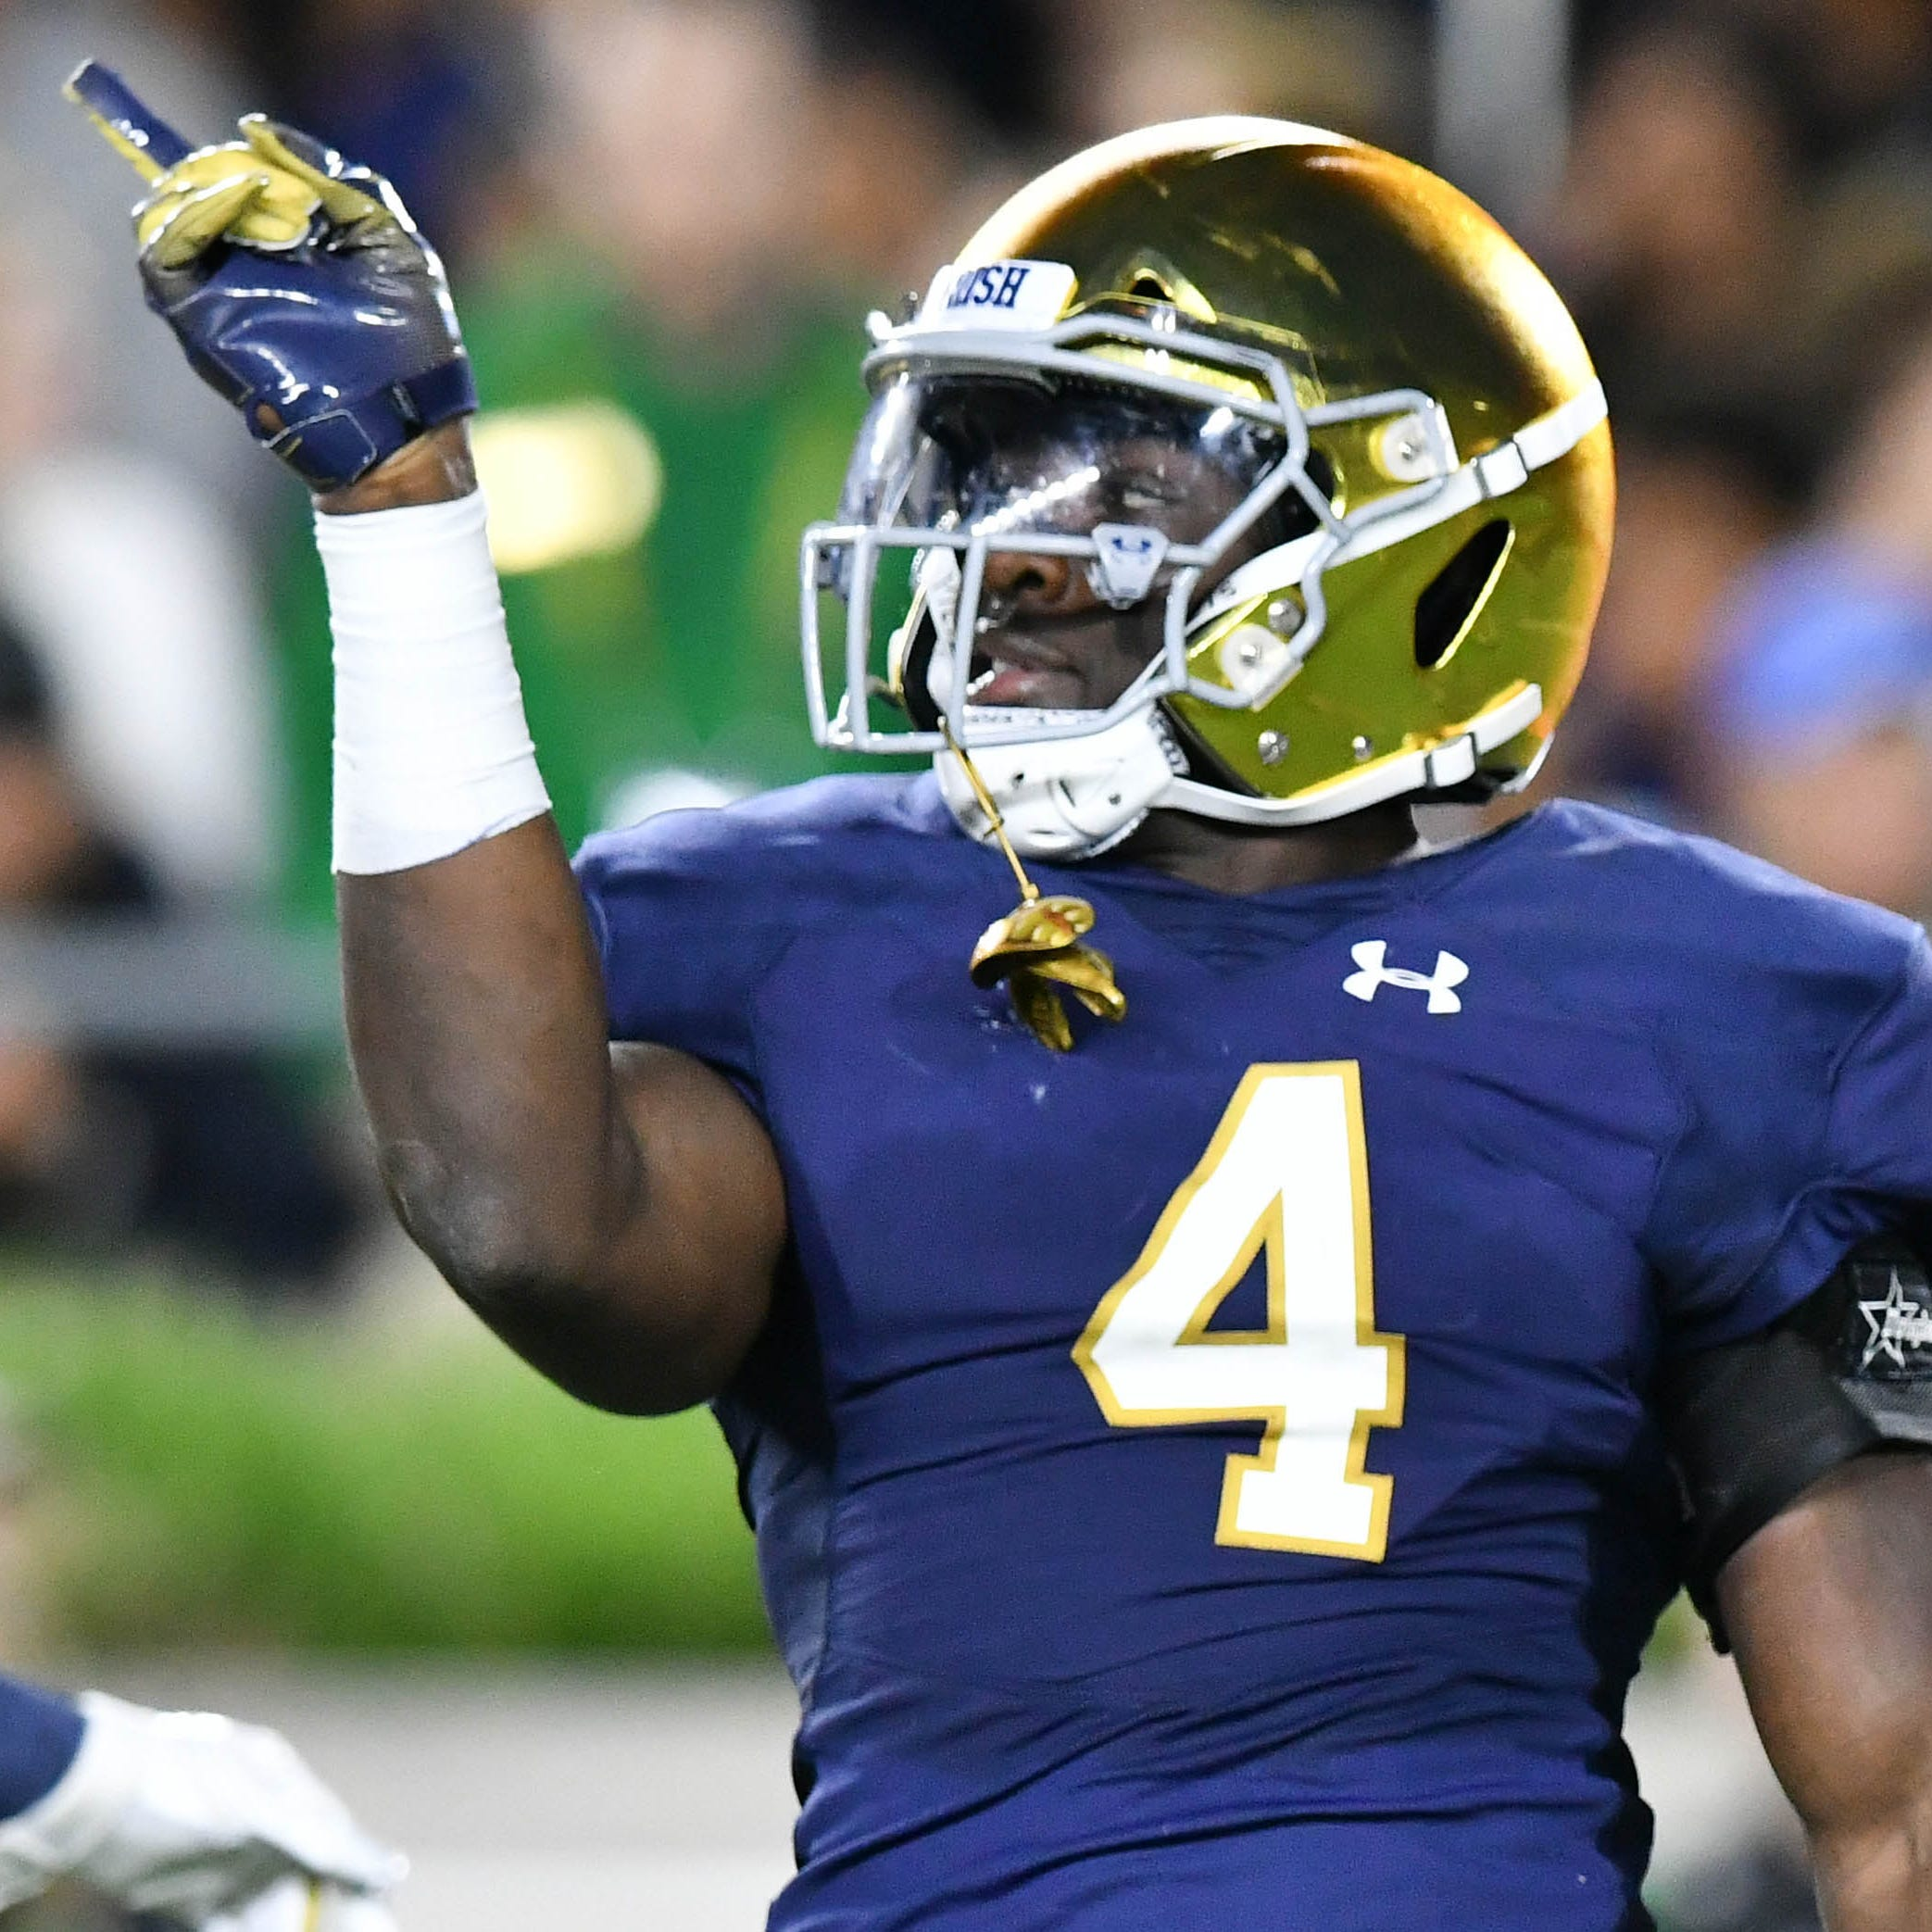 With help from Jaylon Smith, Te'von Coney continues tradition of Notre Dame LBs